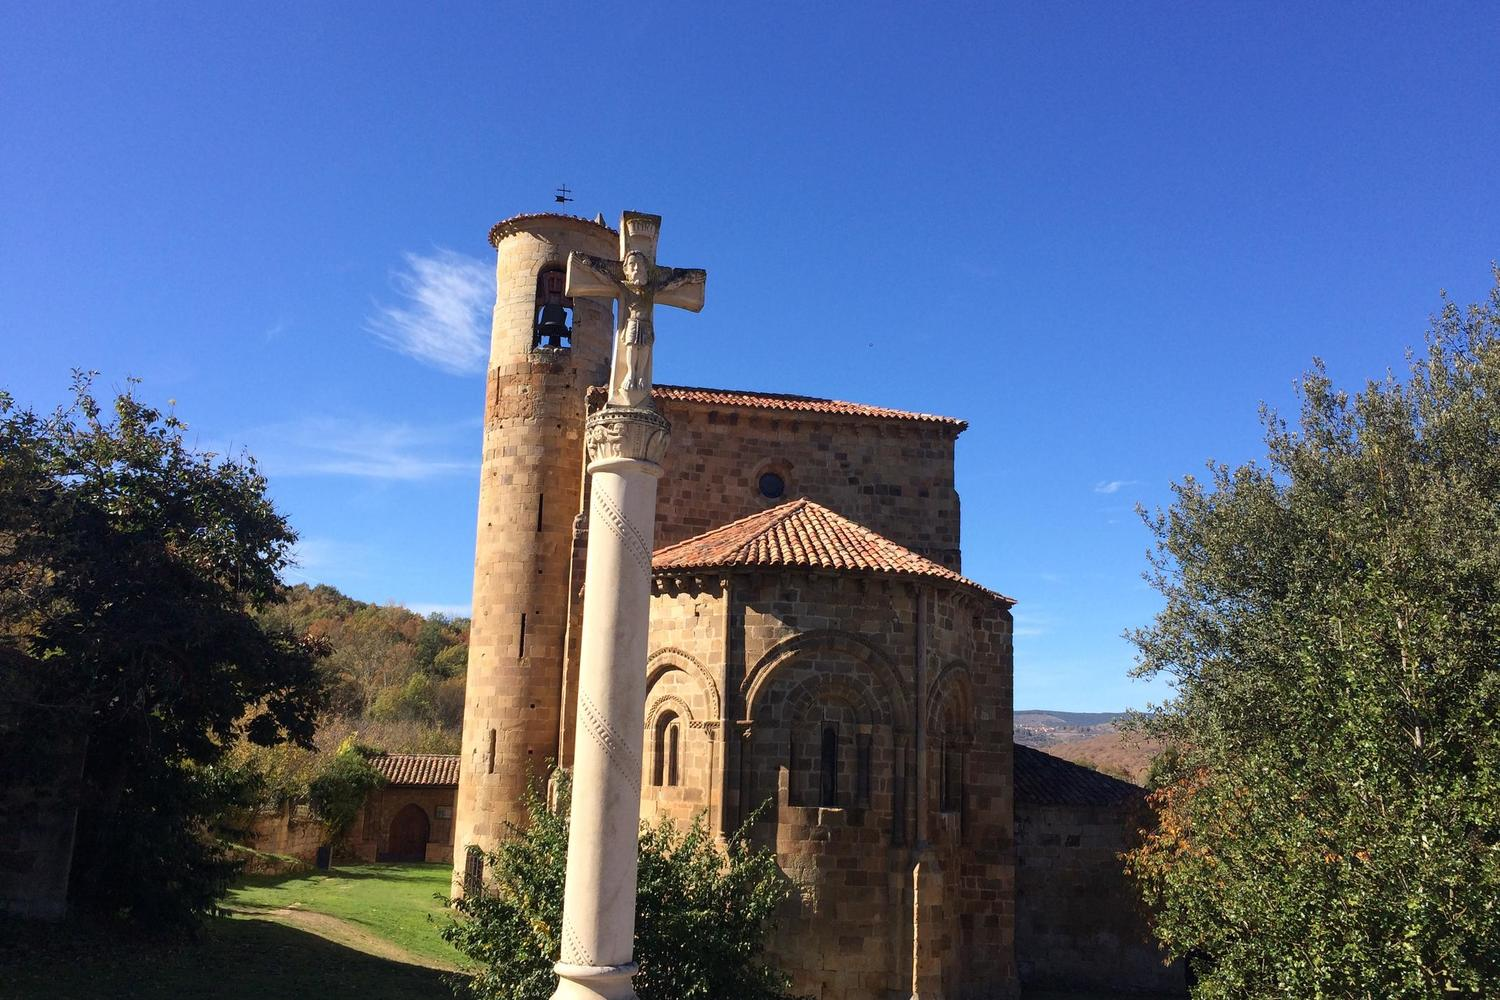 A classically Romanesque church in the Ebro region of Spain